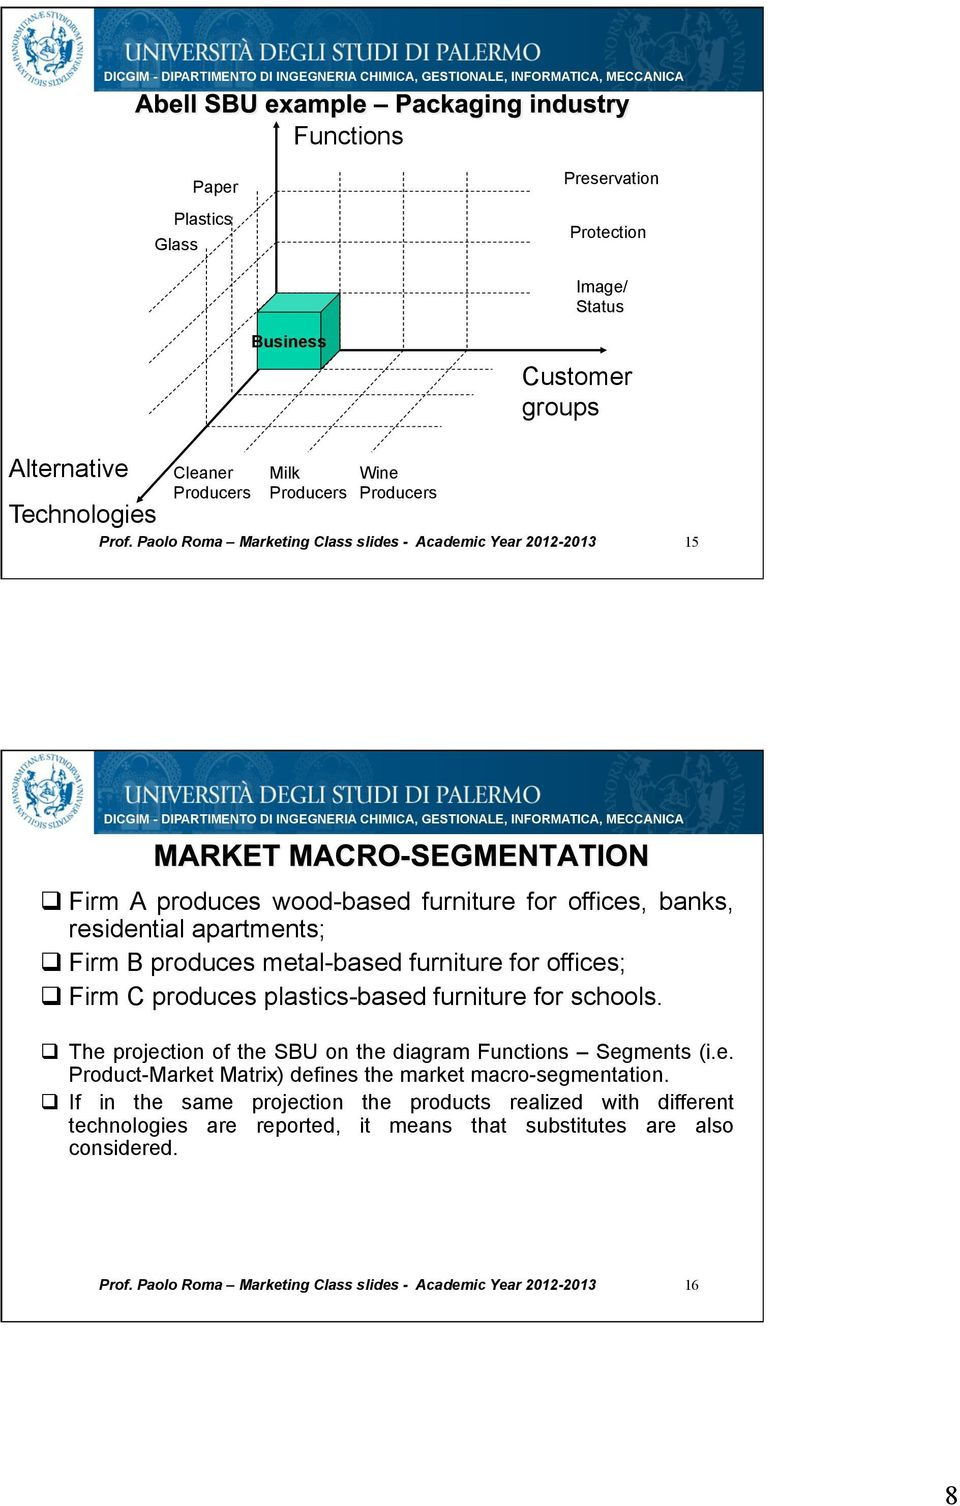 produces plastics-based furniture for schools. The projection of the SBU on the diagram Functions Segments (i.e. Product-Market Matrix) defines the market macro-segmentation.